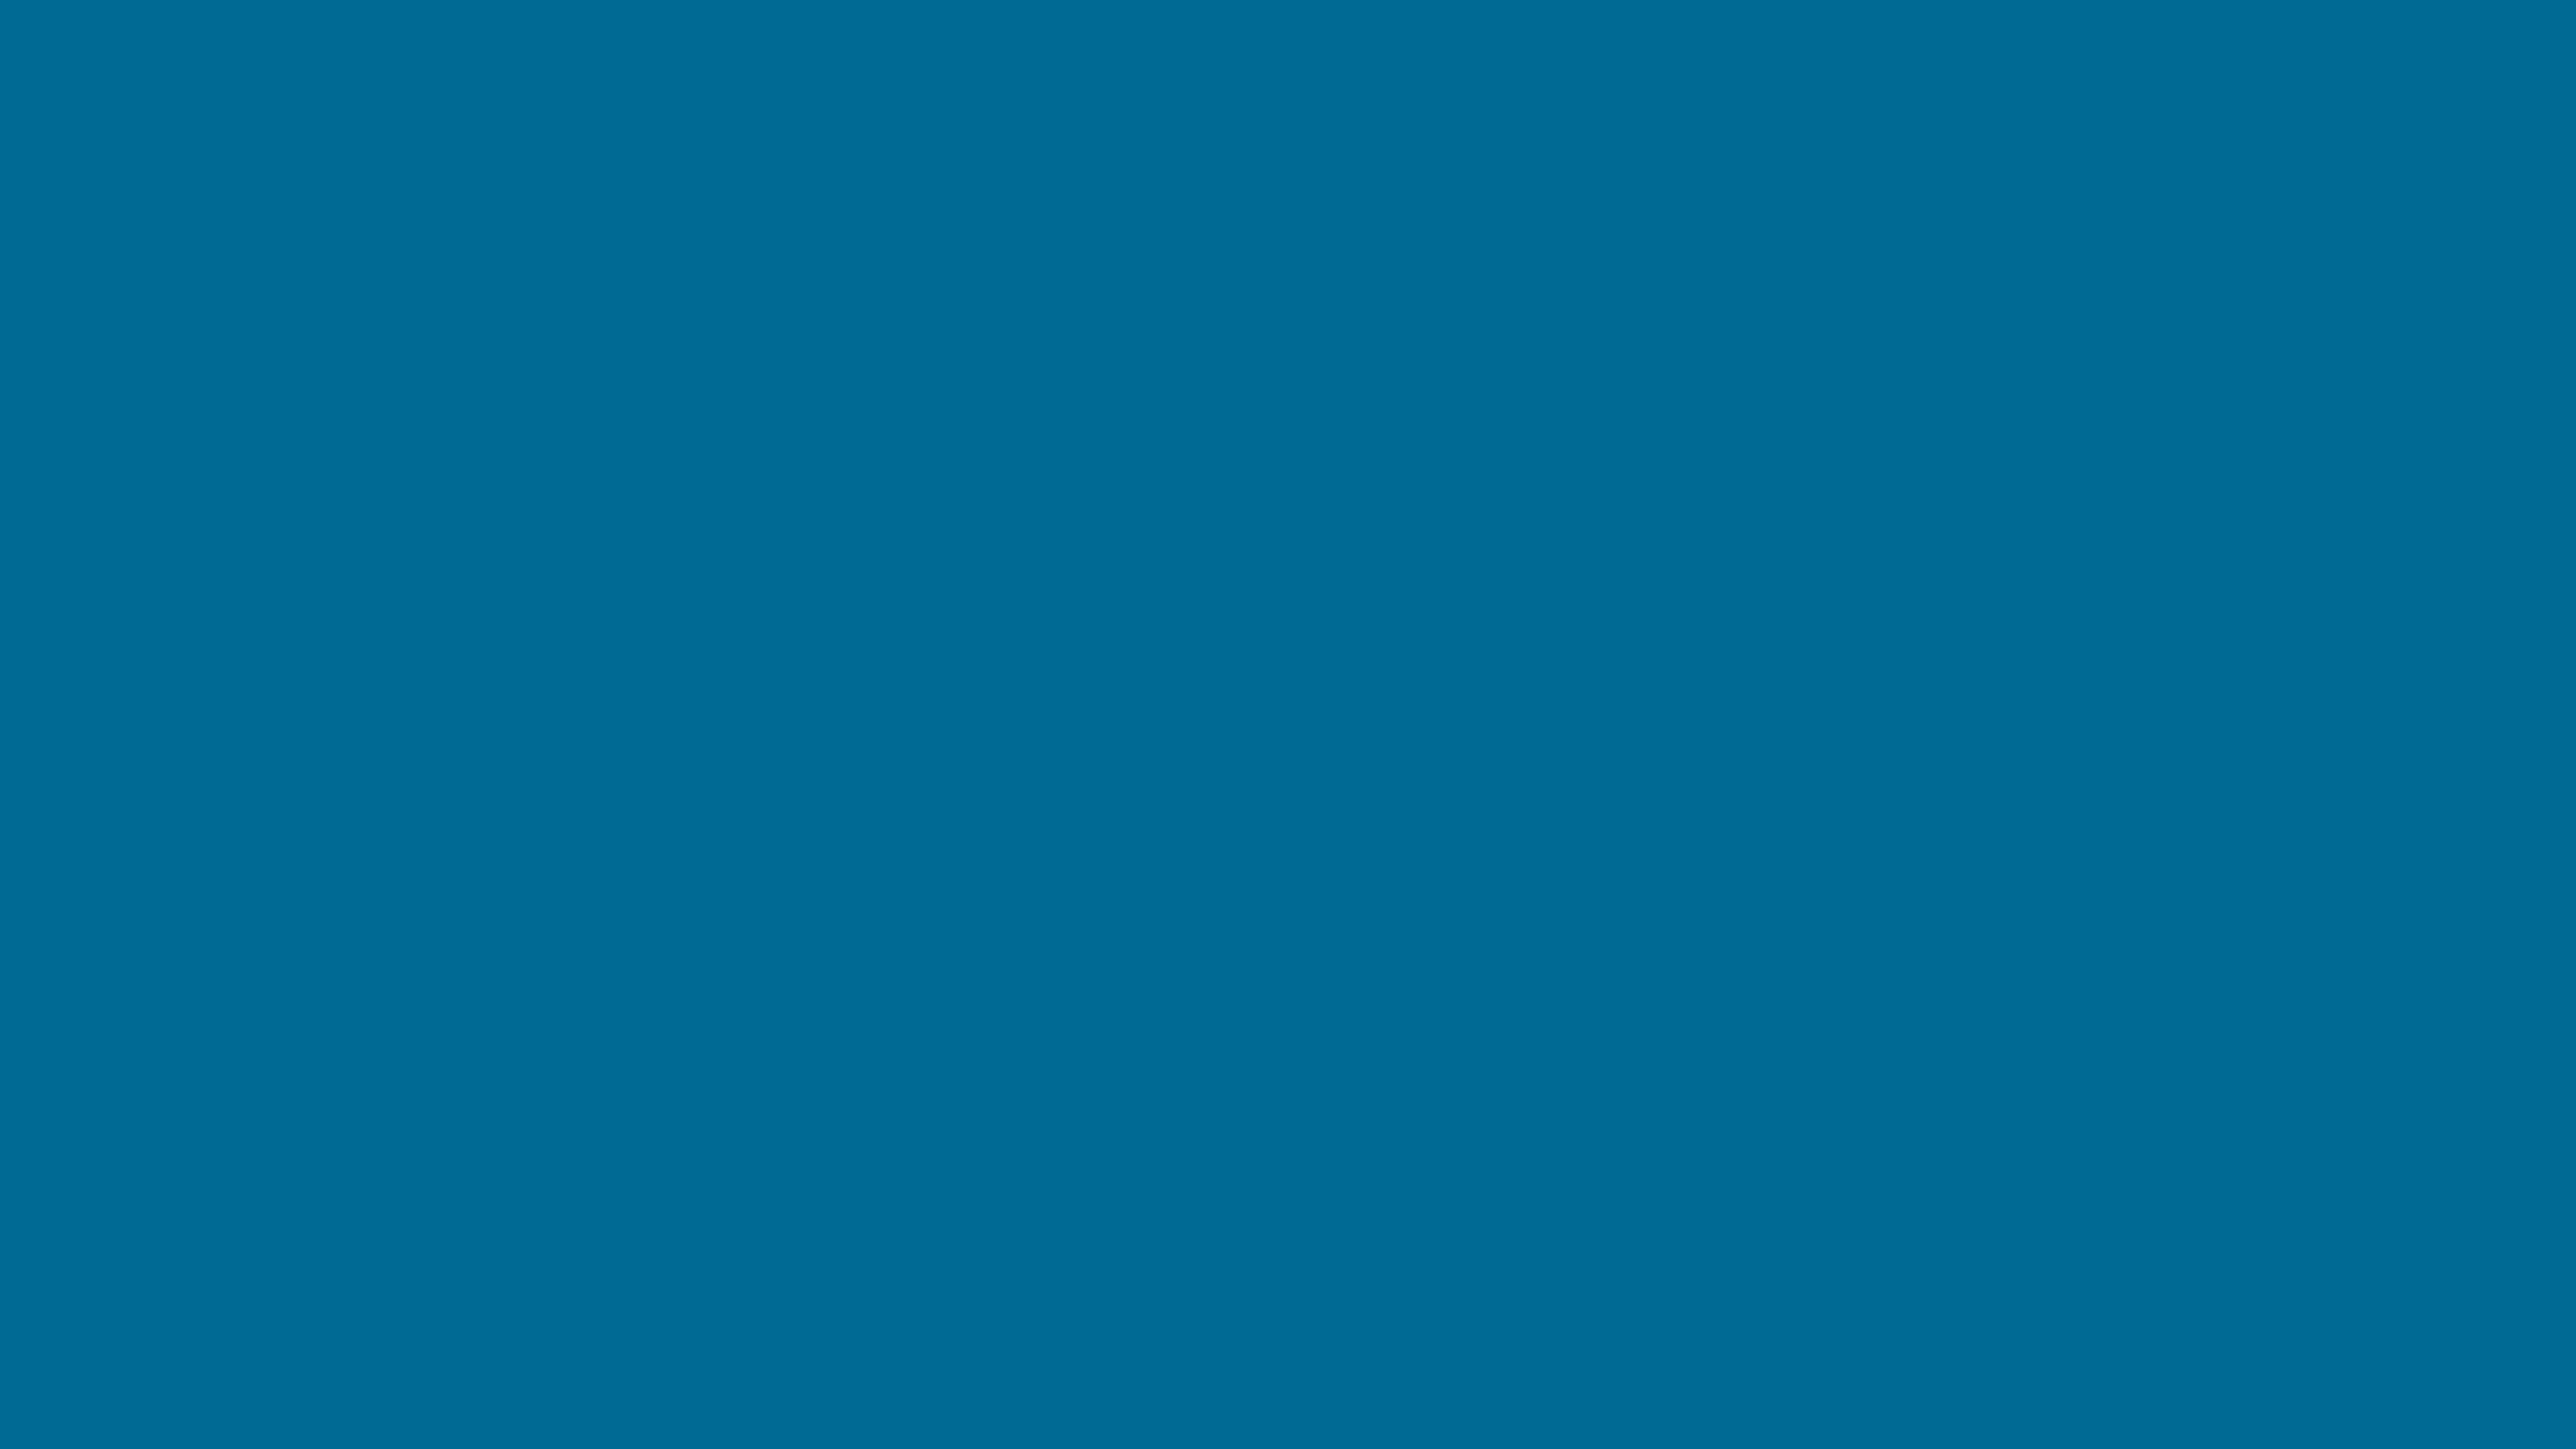 4096x2304 Sea Blue Solid Color Background